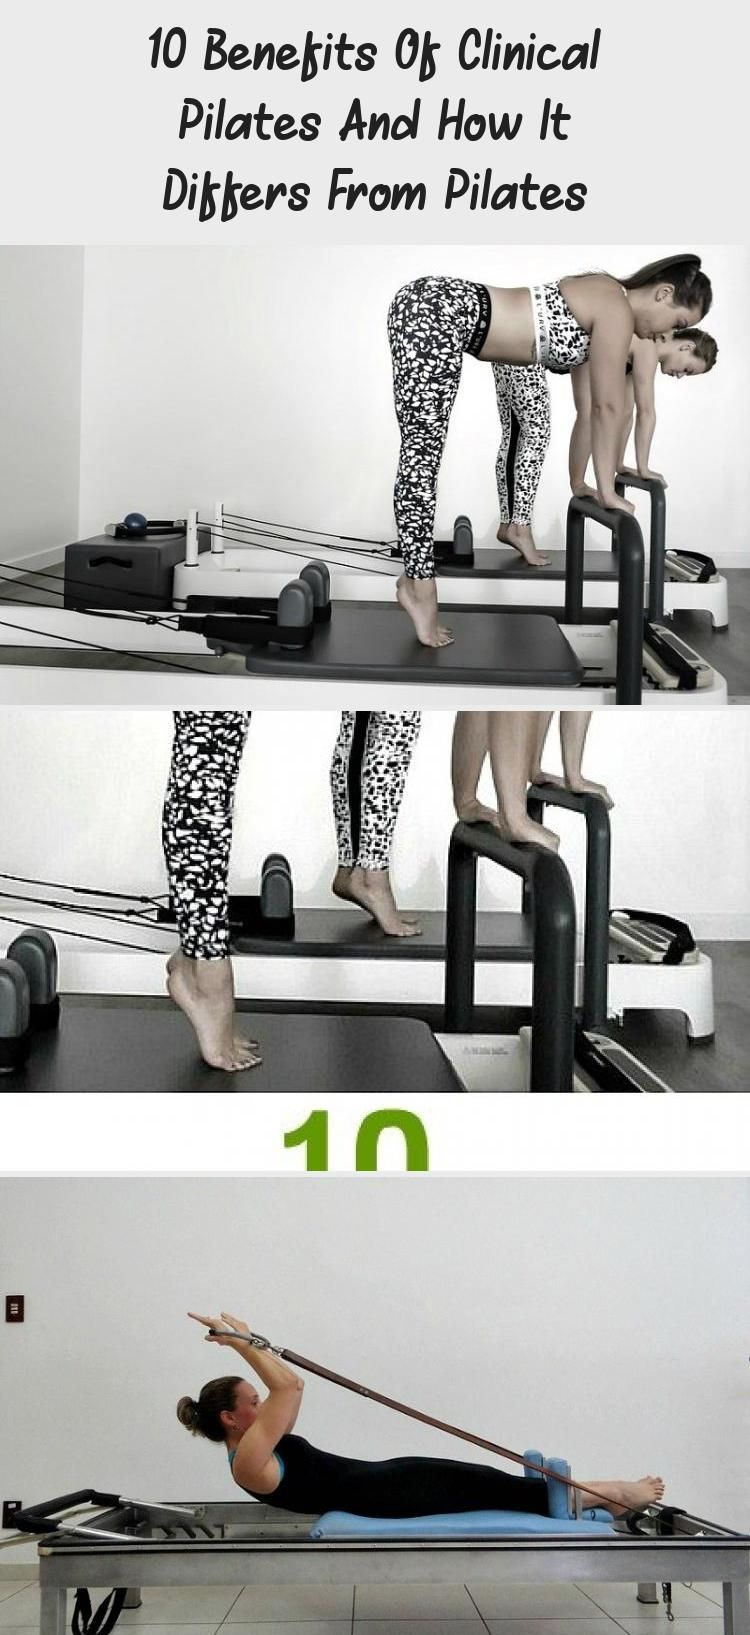 The Benefits of Clinical Pilates and How It Differs From Pilates: Physiotherapists use Clinical Pila...